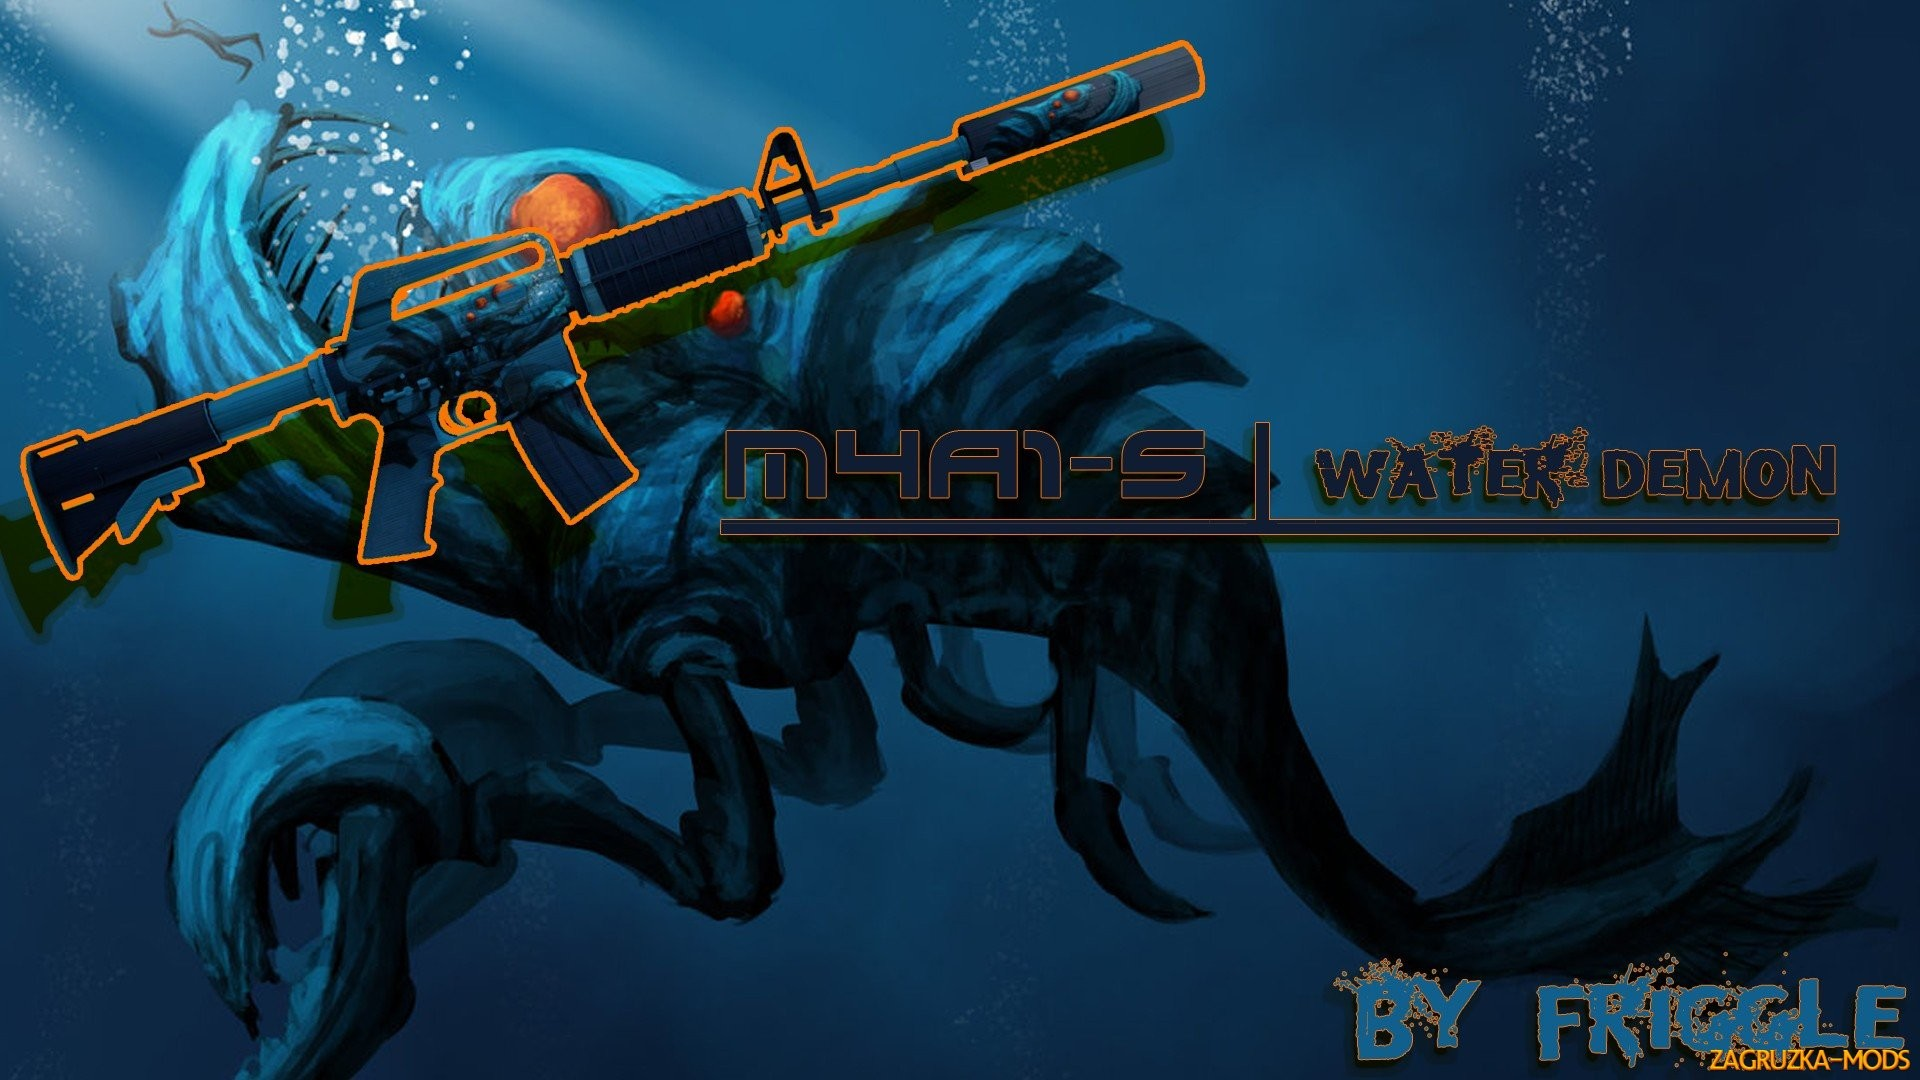 M4A1-S Water Demon Skin for CS:GO